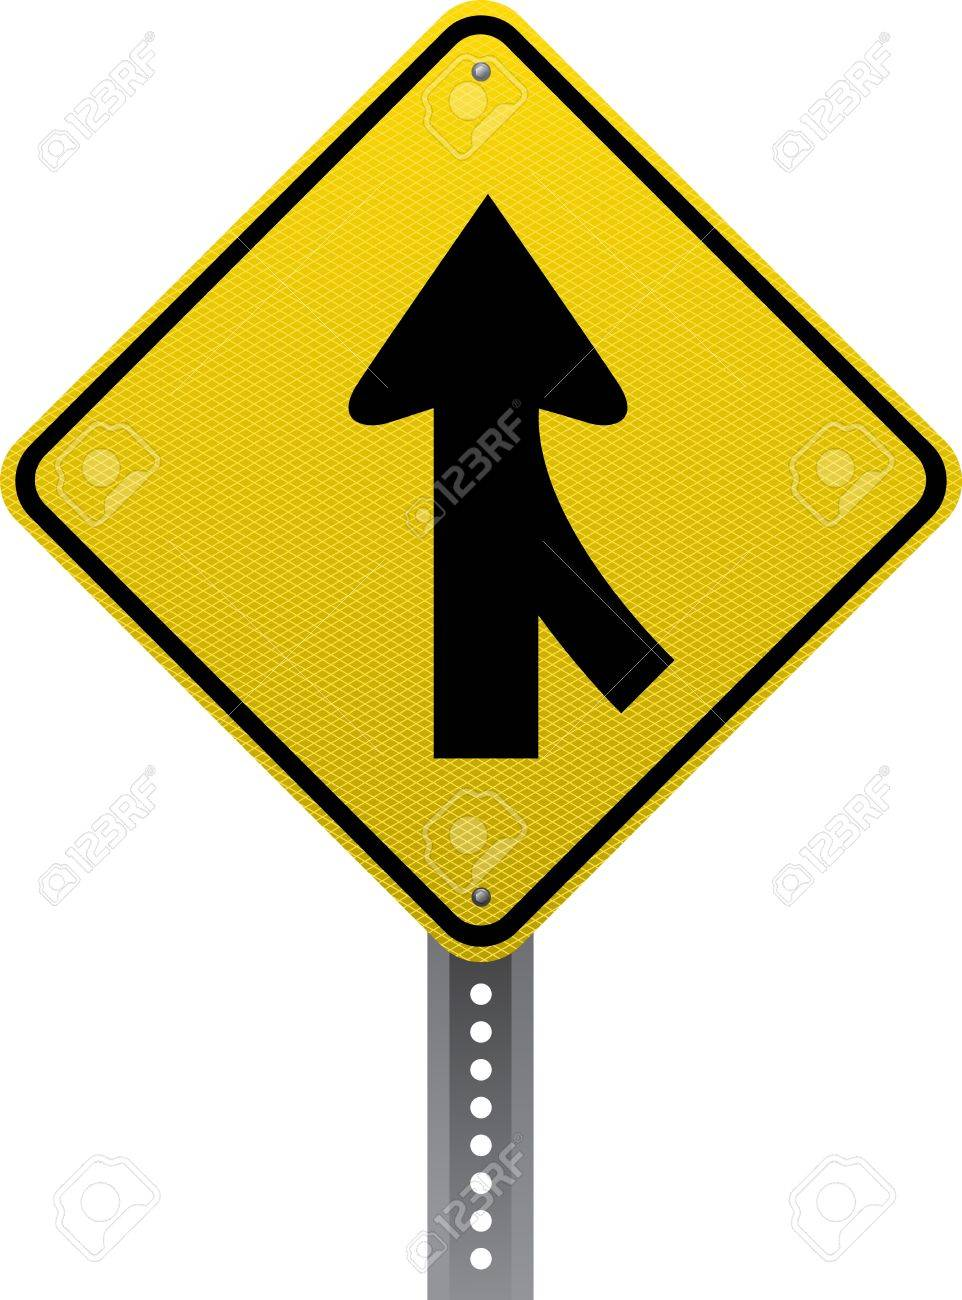 Merging traffic warning sign. Diamond-shaped traffic signs warn drivers of upcoming road conditions and hazards. Stock Vector - 20953906